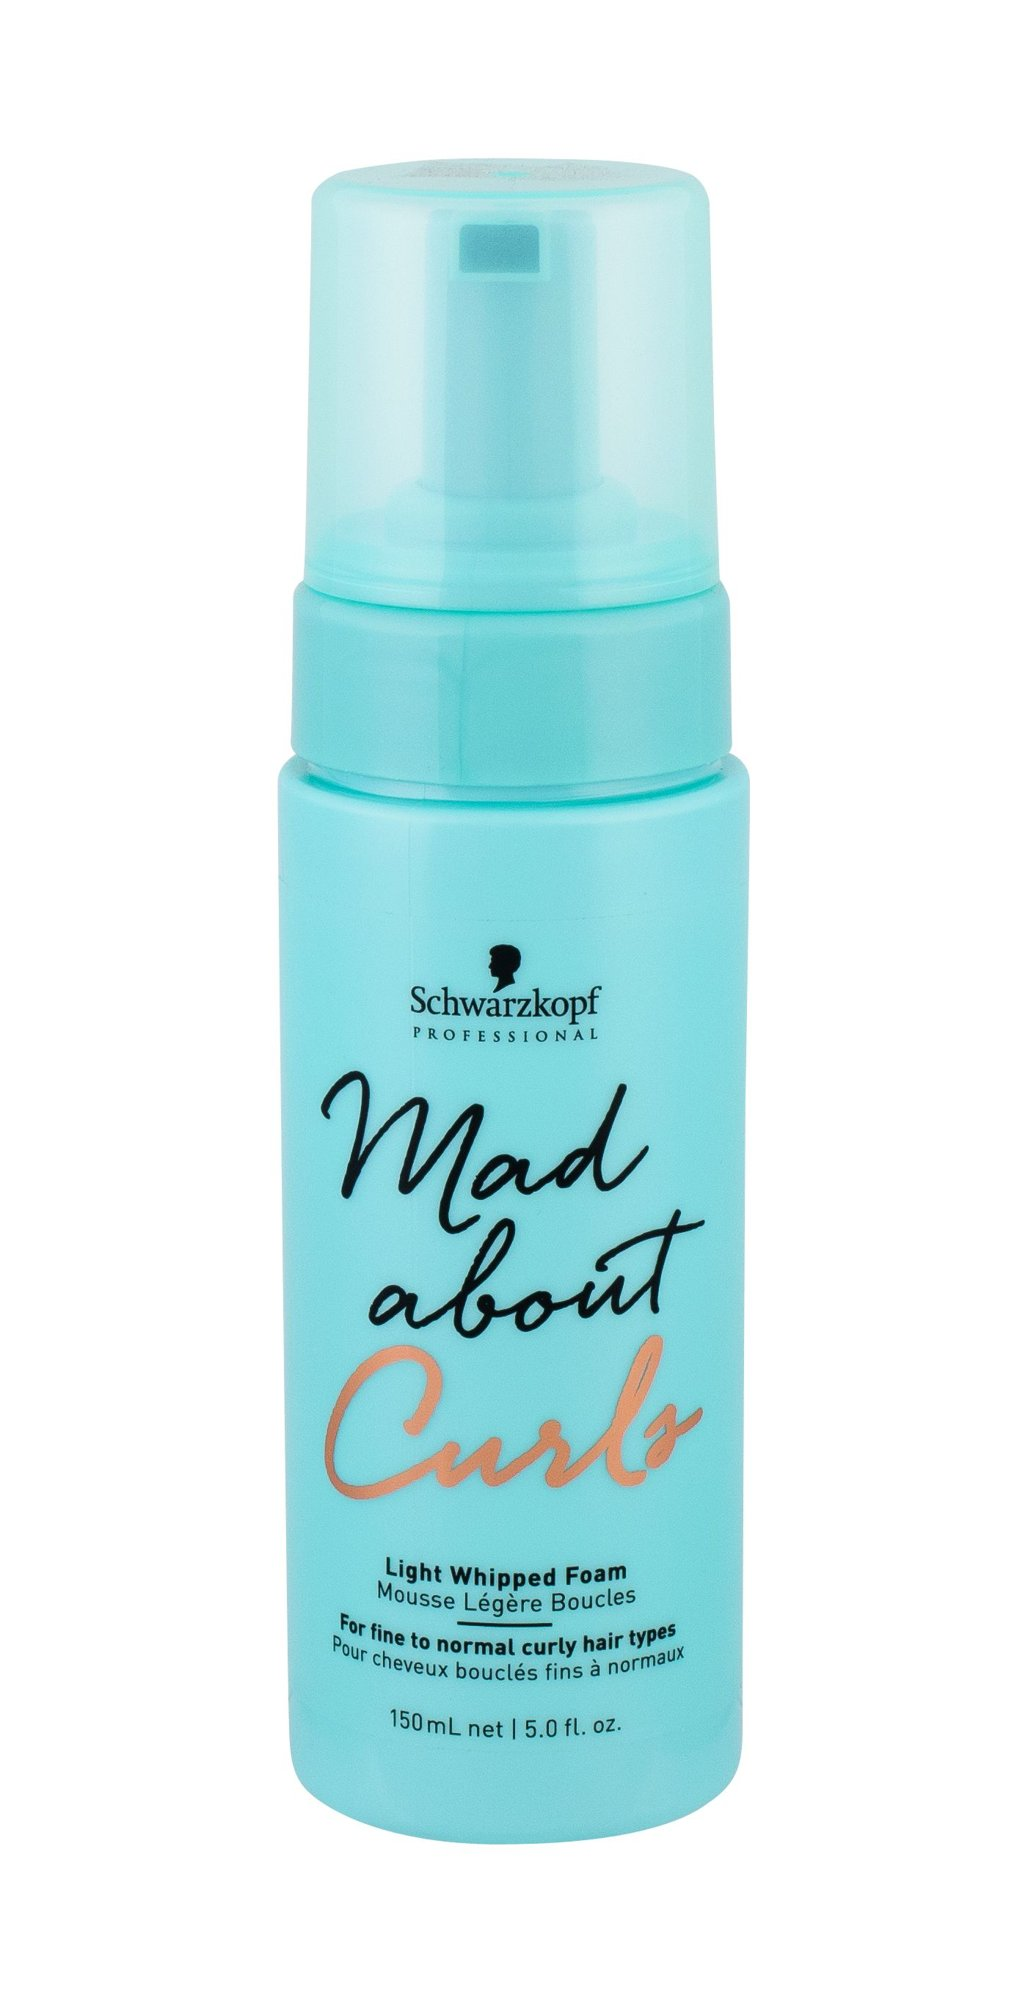 Schwarzkopf Mad About Curls For Definition and Hair Styling 150ml